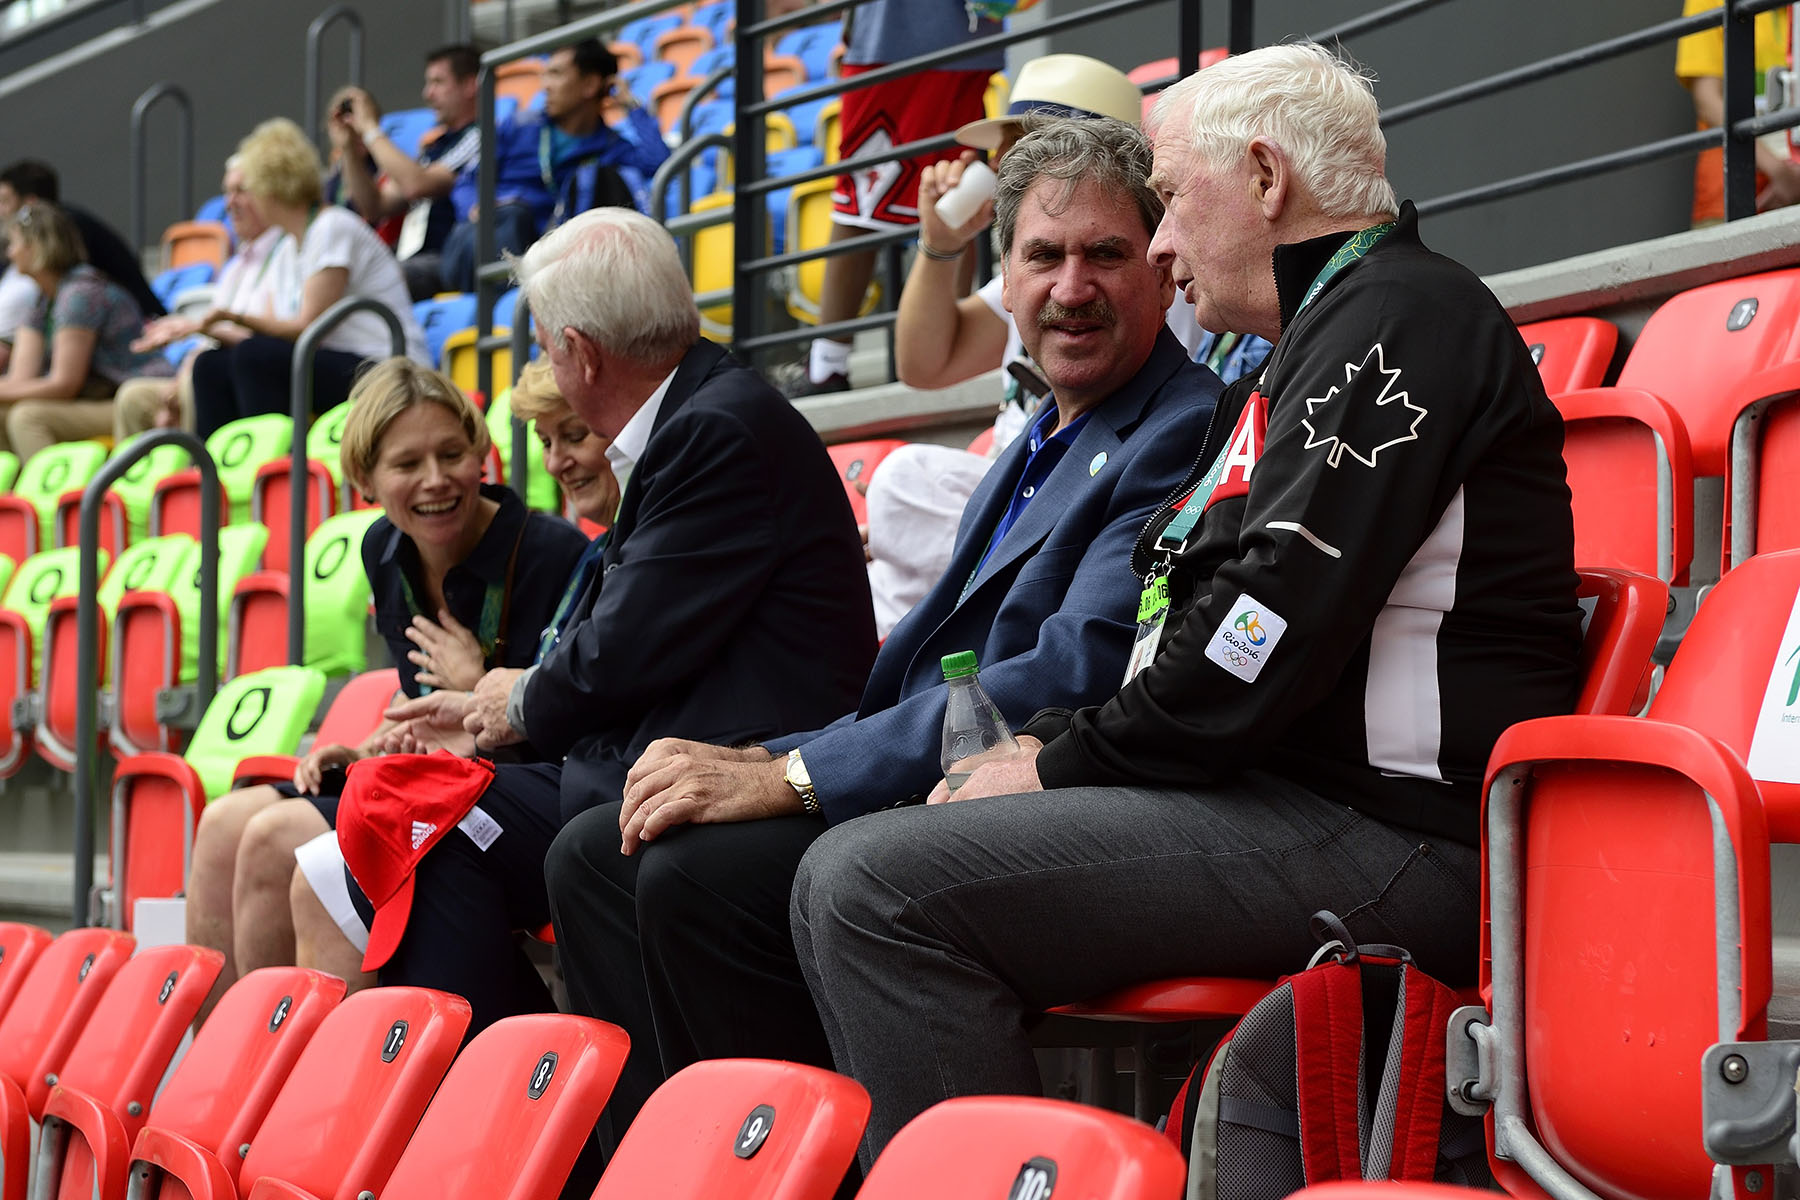 During a tennis match, the Governor General had a chat with David Haggerty, President of the International Tennis Federation.